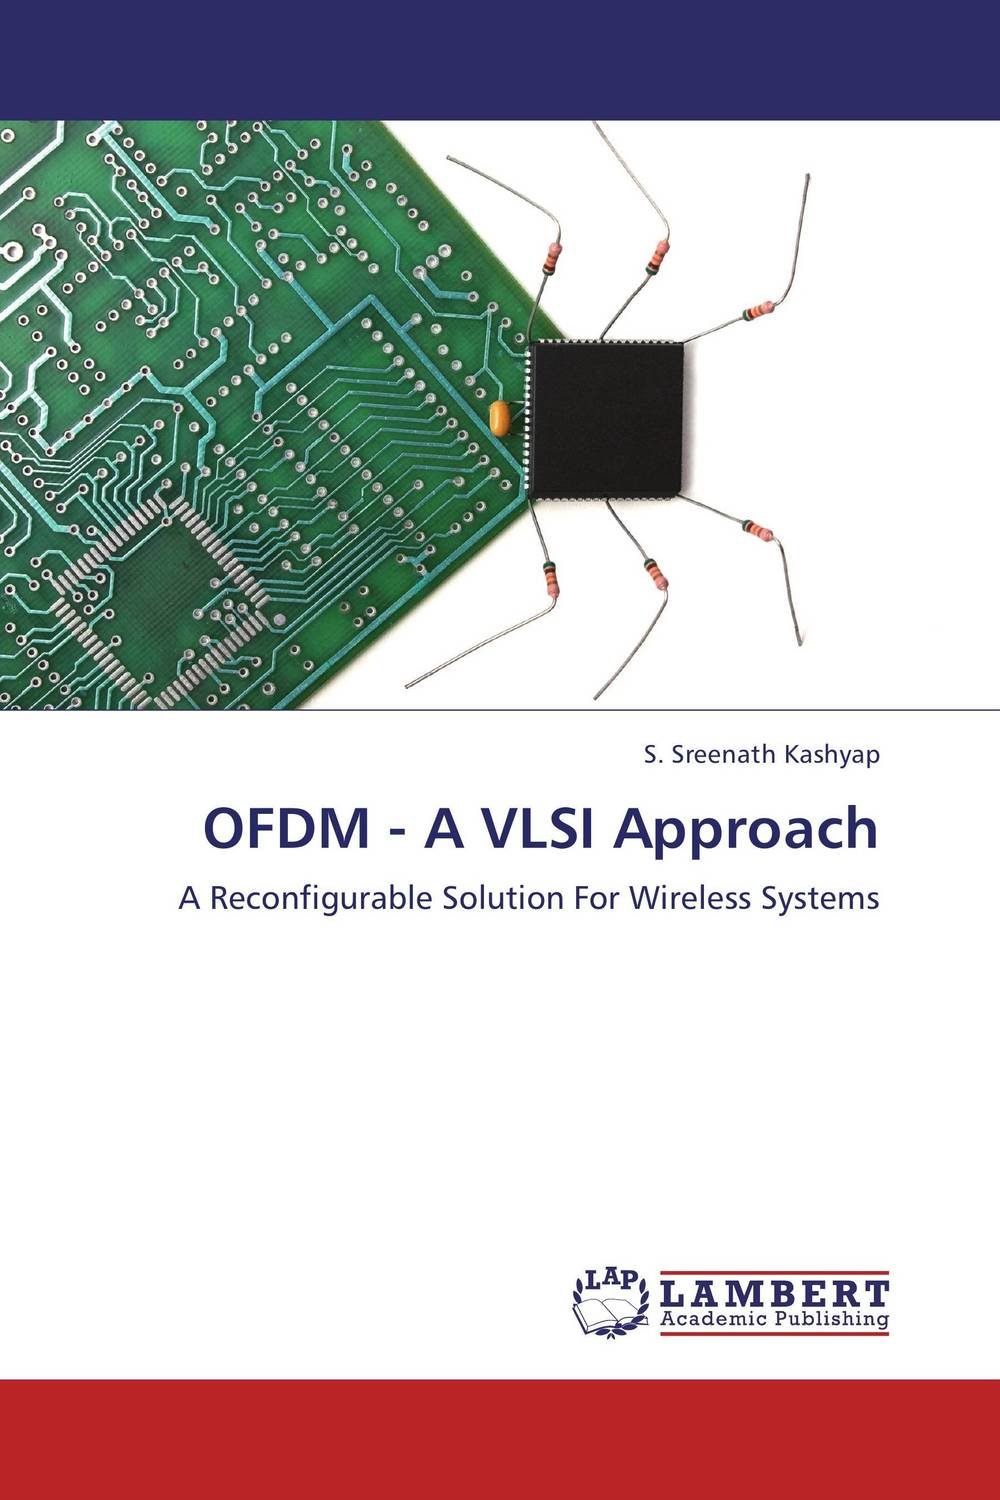 OFDM - A VLSI Approach interference cancellation methods in mimo ofdm systems